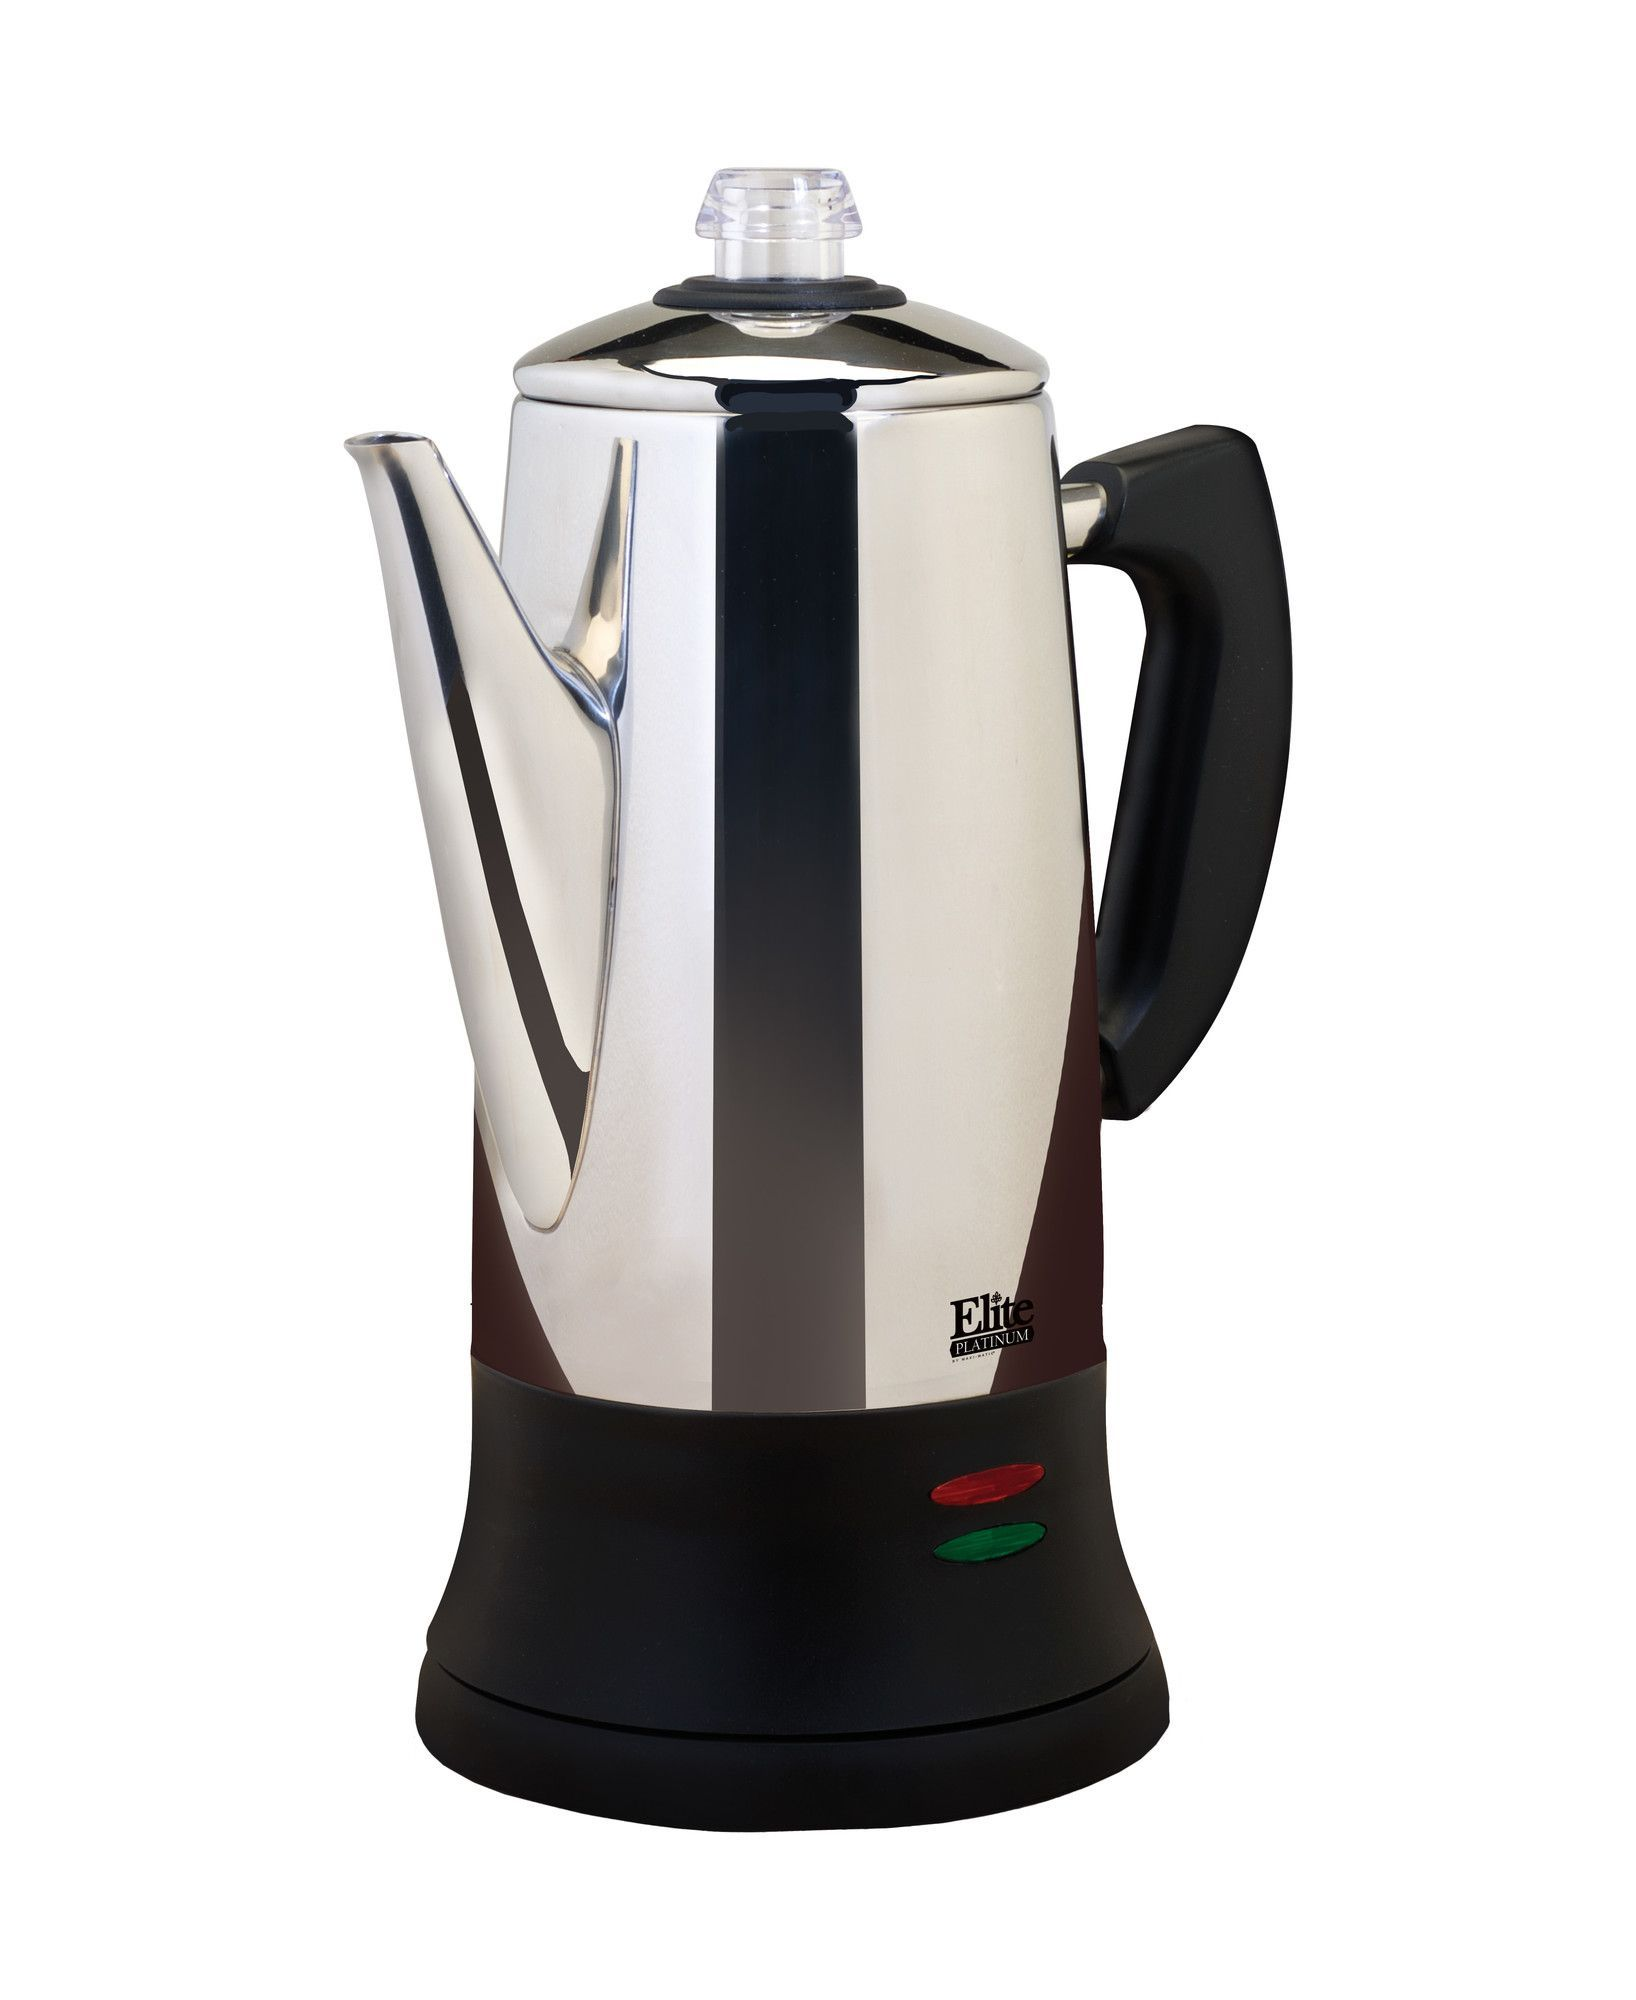 Platinum stainless steel cup tea and coffee percolator coffee